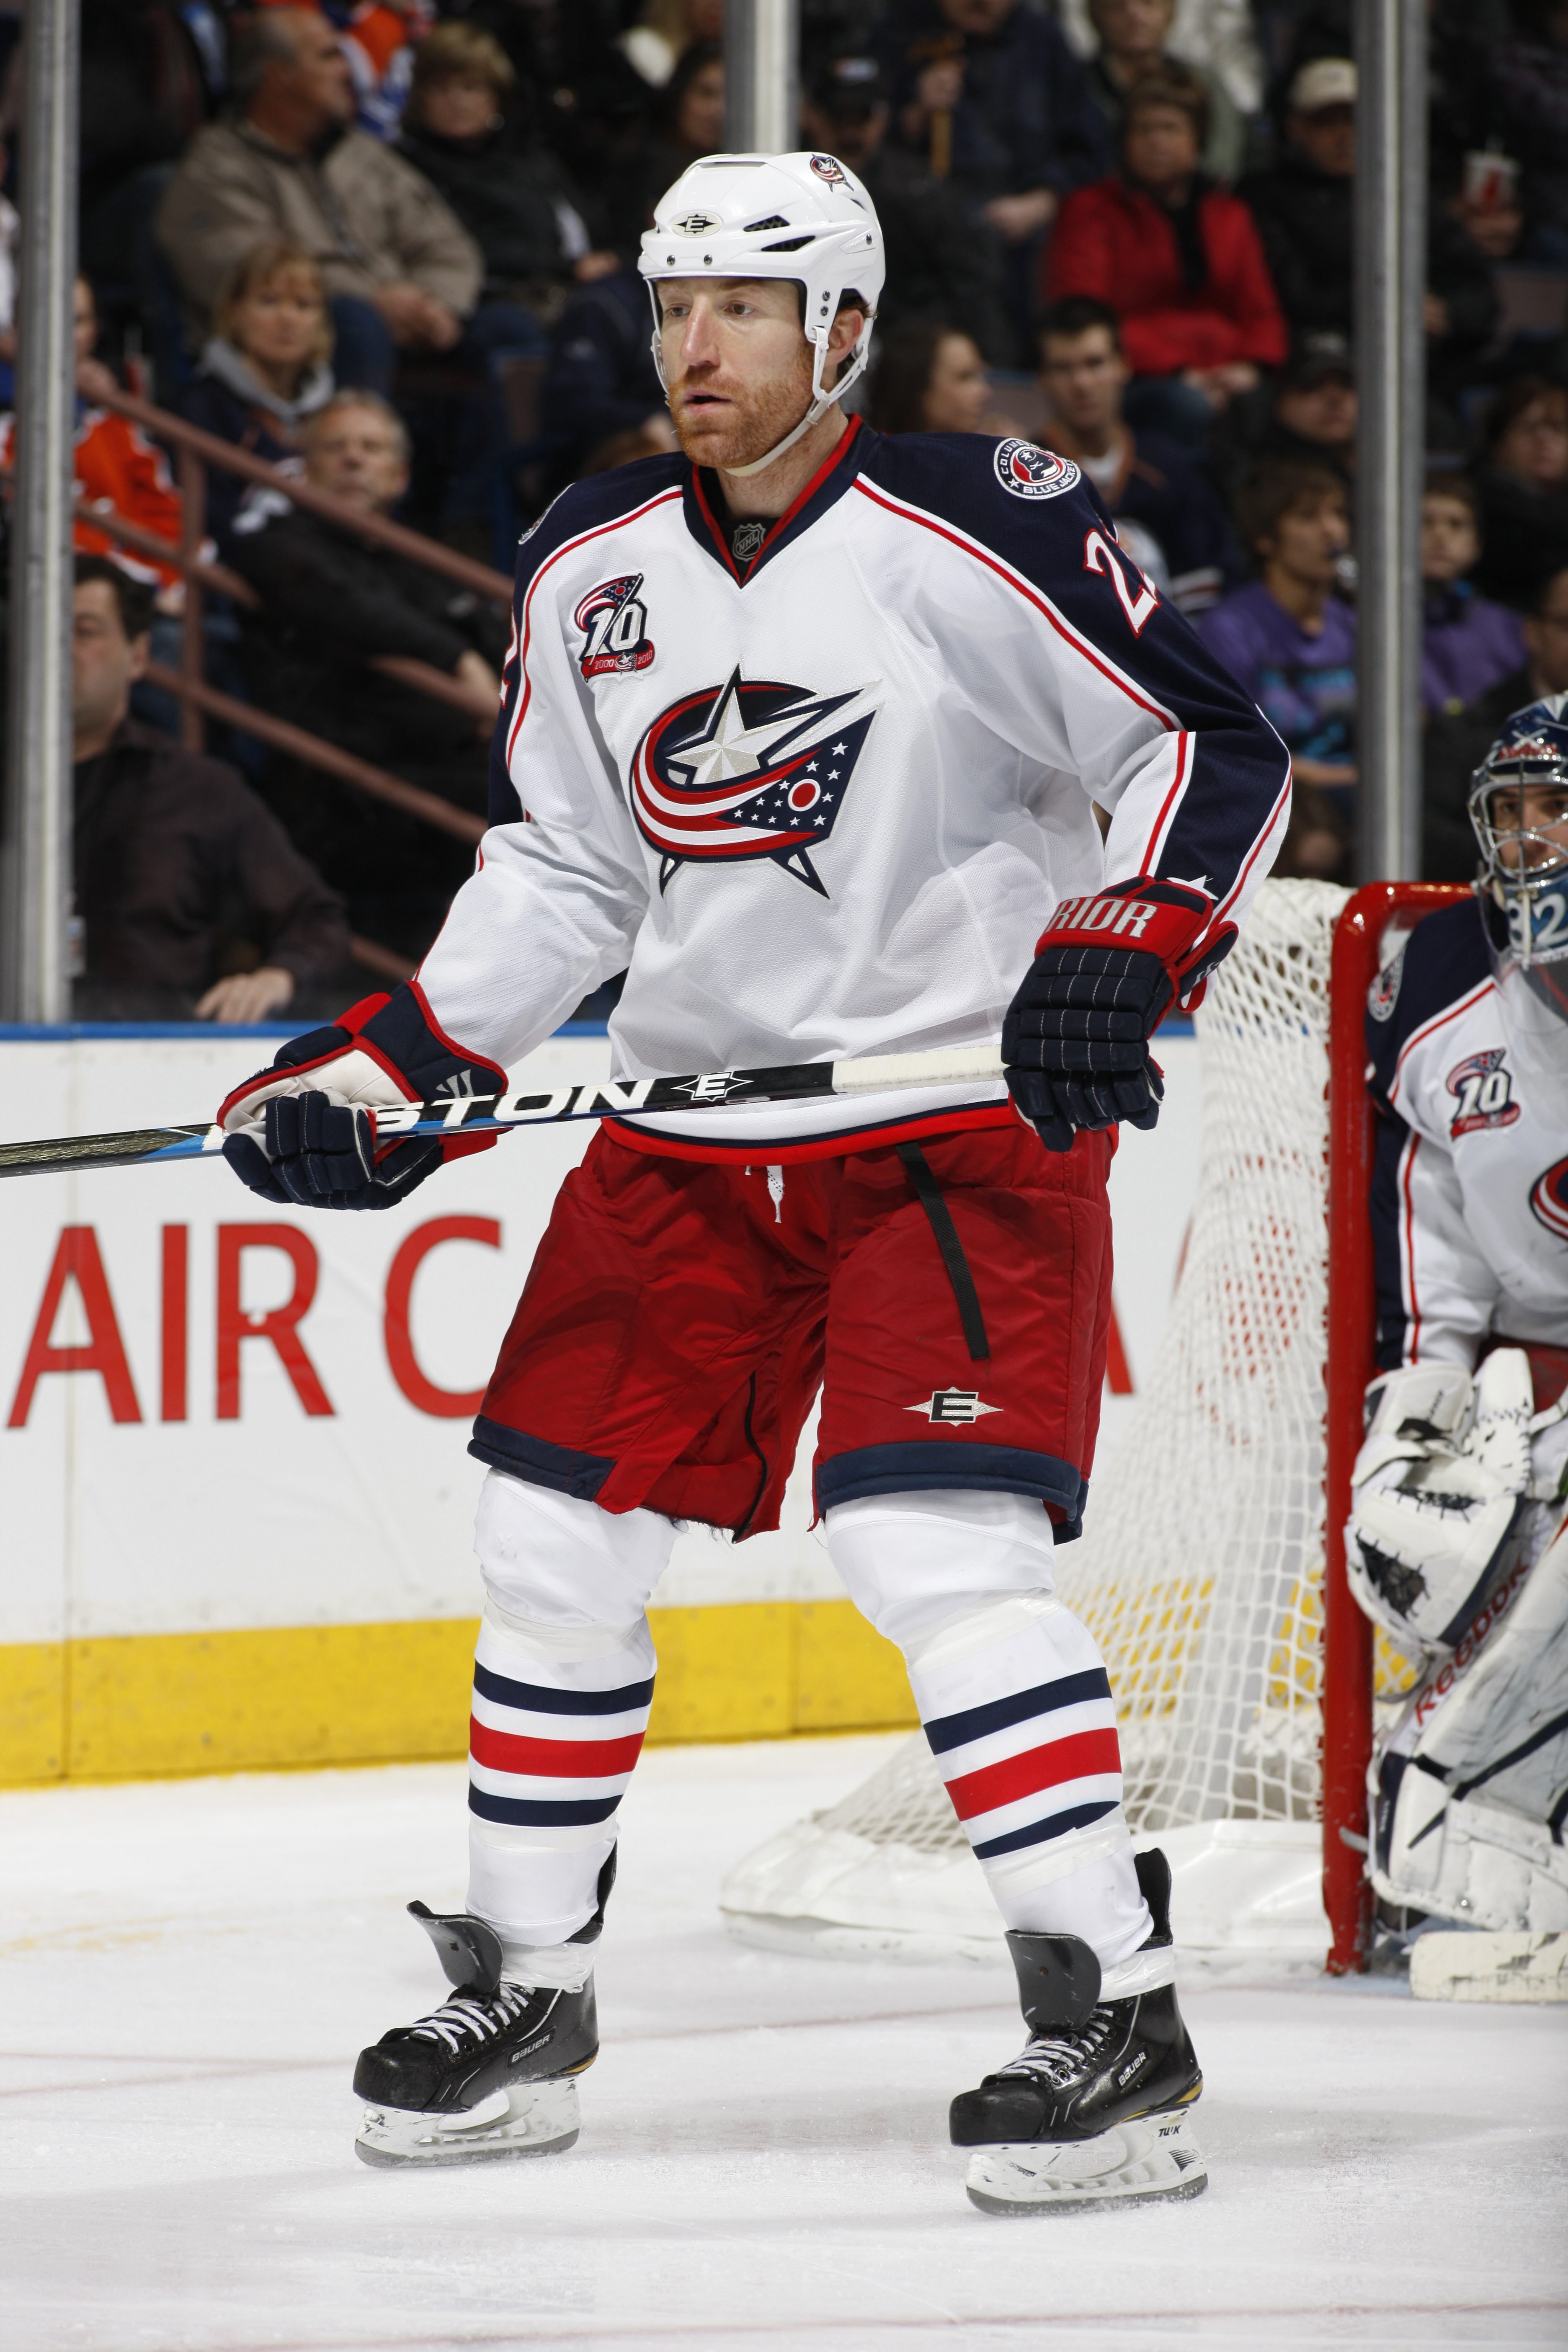 EDMONTON, CANADA - DECEMBER 16: Mike Commodore #22 of the Columbus Blue Jackets skates against the Edmonton Oilers on December 16, 2010 at Rexall Place in Edmonton, Alberta, Canada. (Photo by Dale MacMillan/Getty Images)